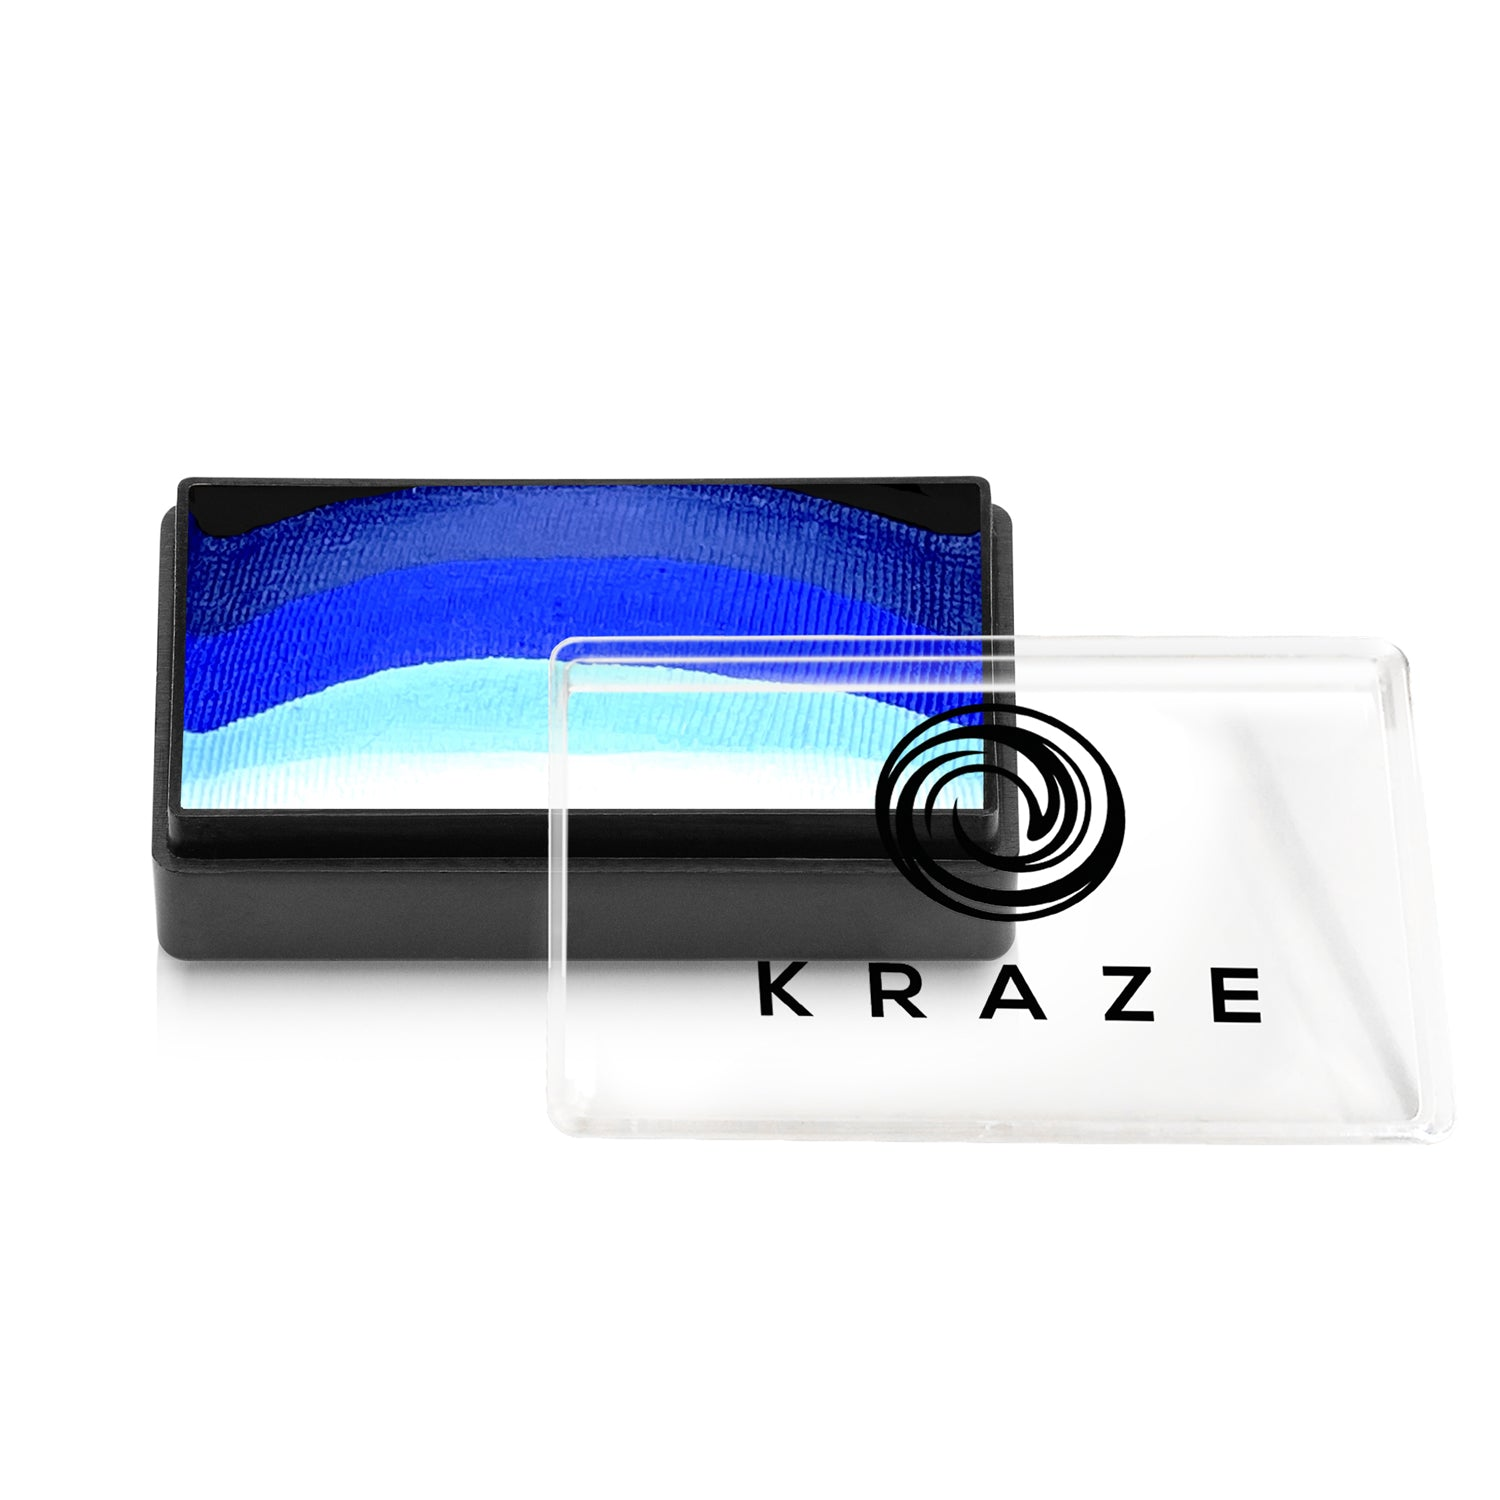 Kraze FX Dome Stroke - 25 gm - Dark Wave